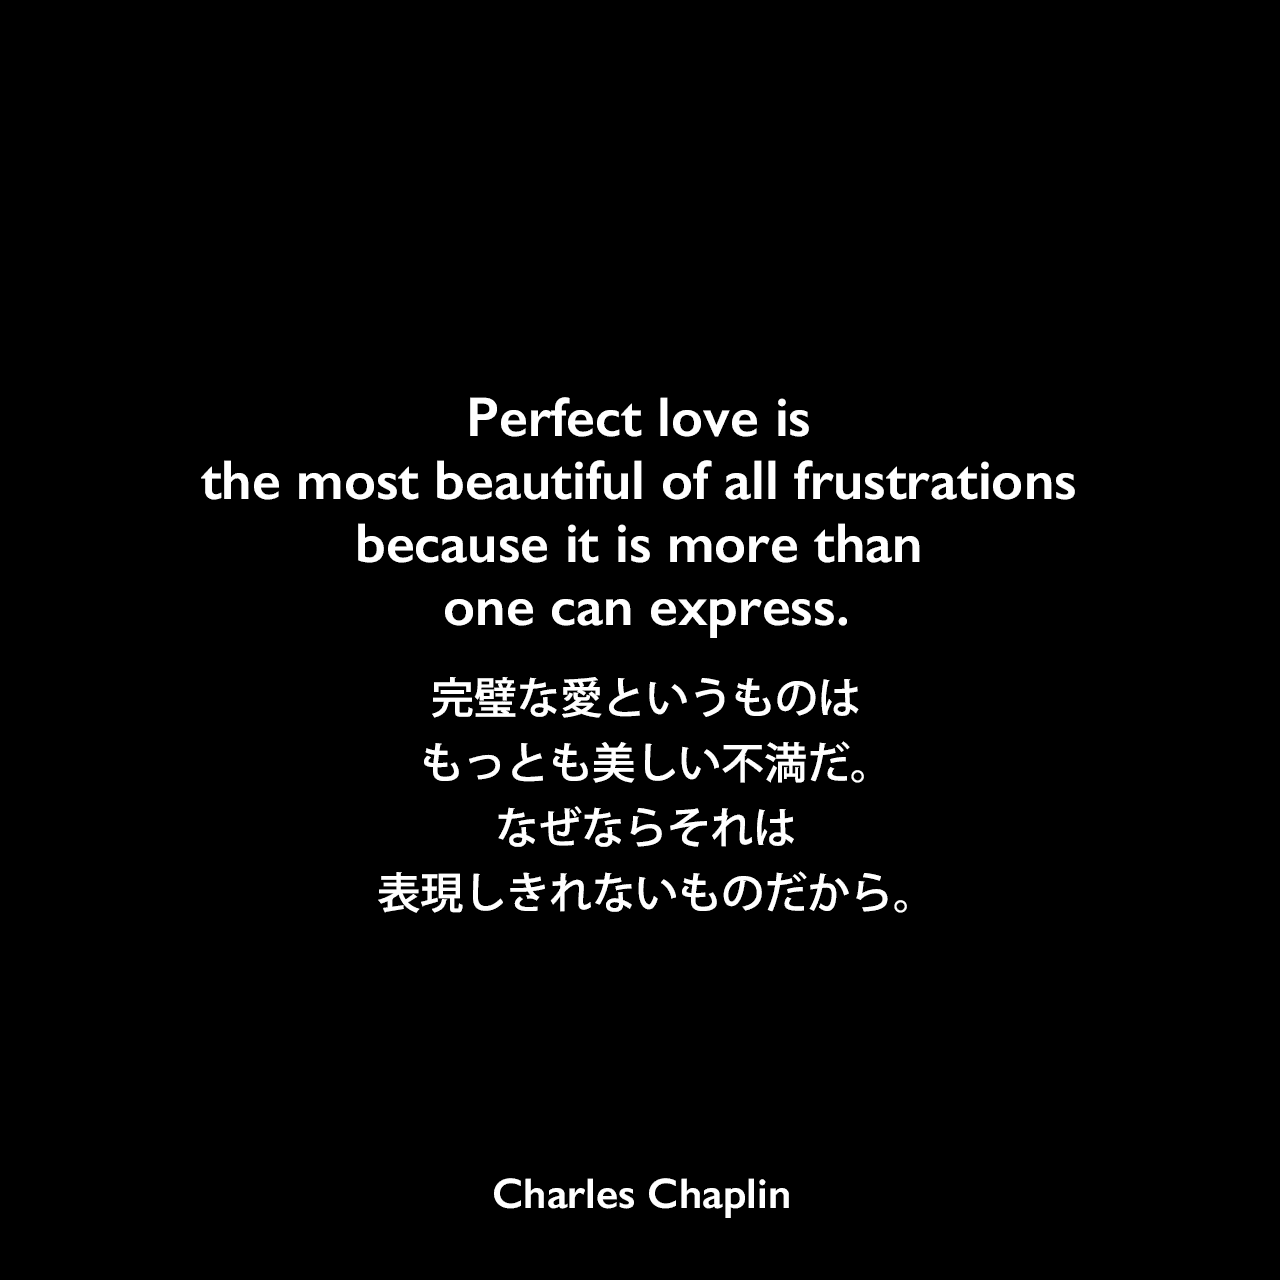 Perfect love is the most beautiful of all frustrations because it is more than one can express.完璧な愛というものは、もっとも美しい不満だ。なぜならそれは、表現しきれないものだから。- チャップリンの自叙伝「My Autobiography」よりCharles Chaplin